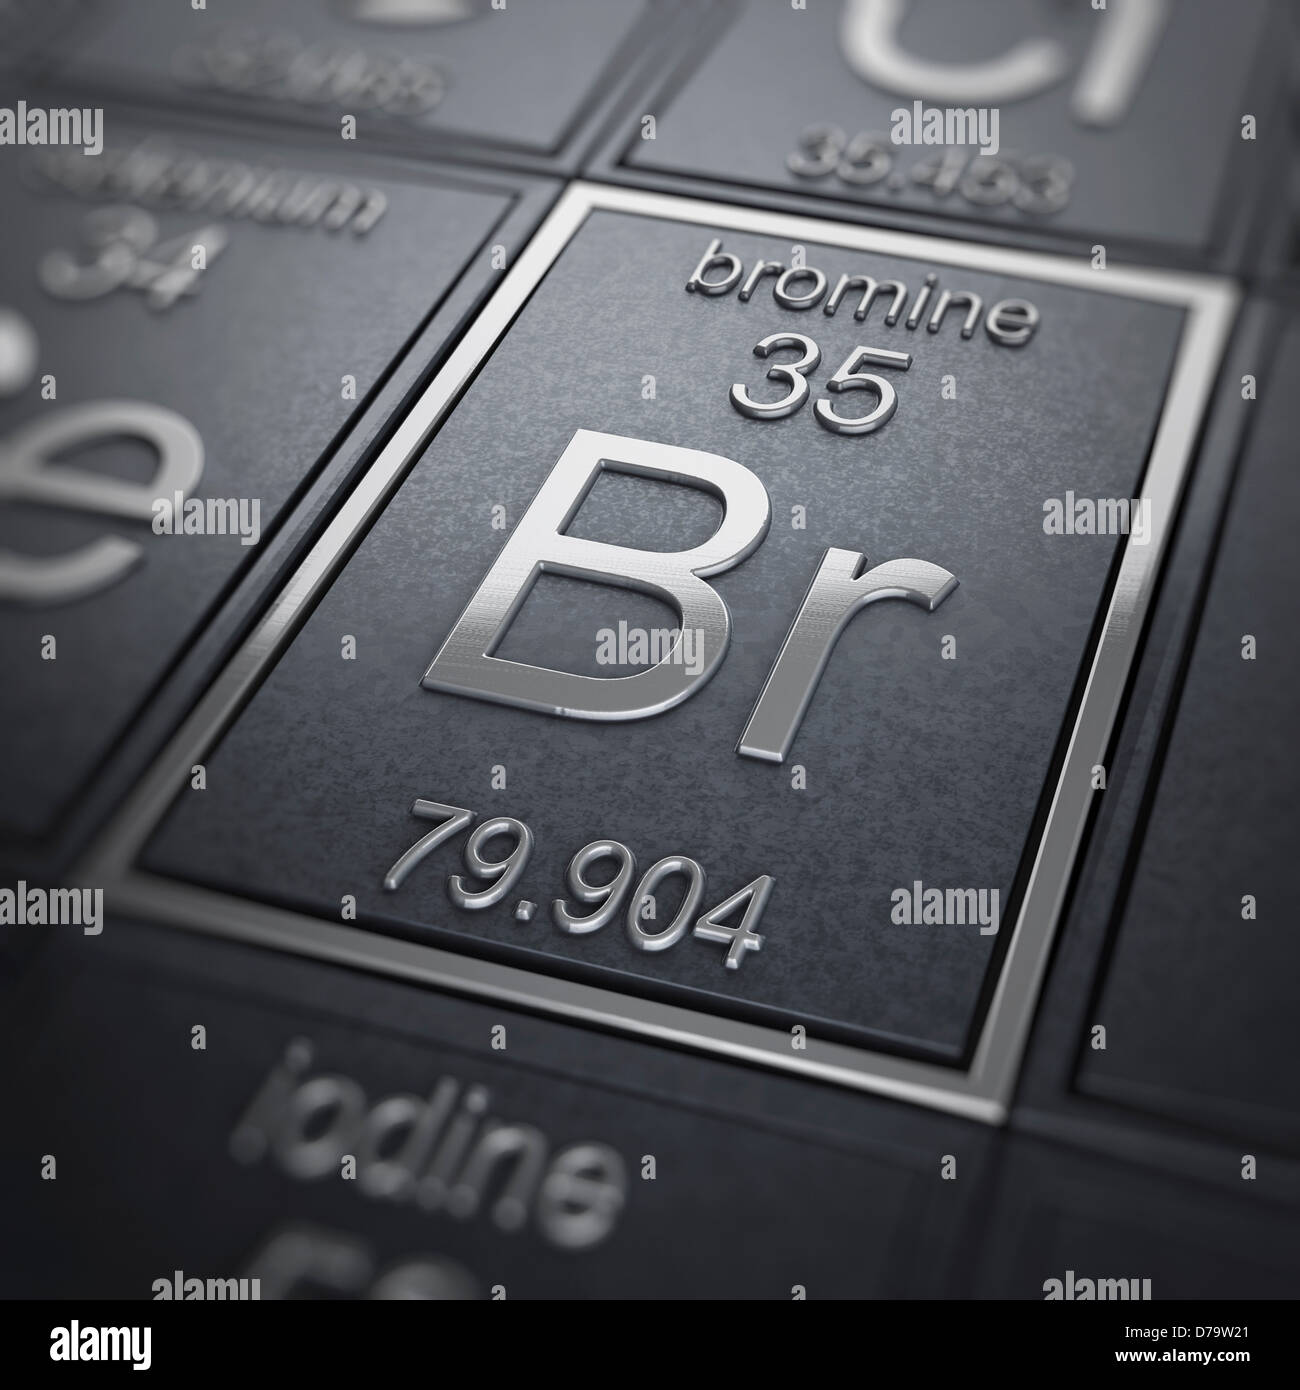 Bromine chemical element stock photo royalty free image 56150921 bromine chemical element biocorpaavc